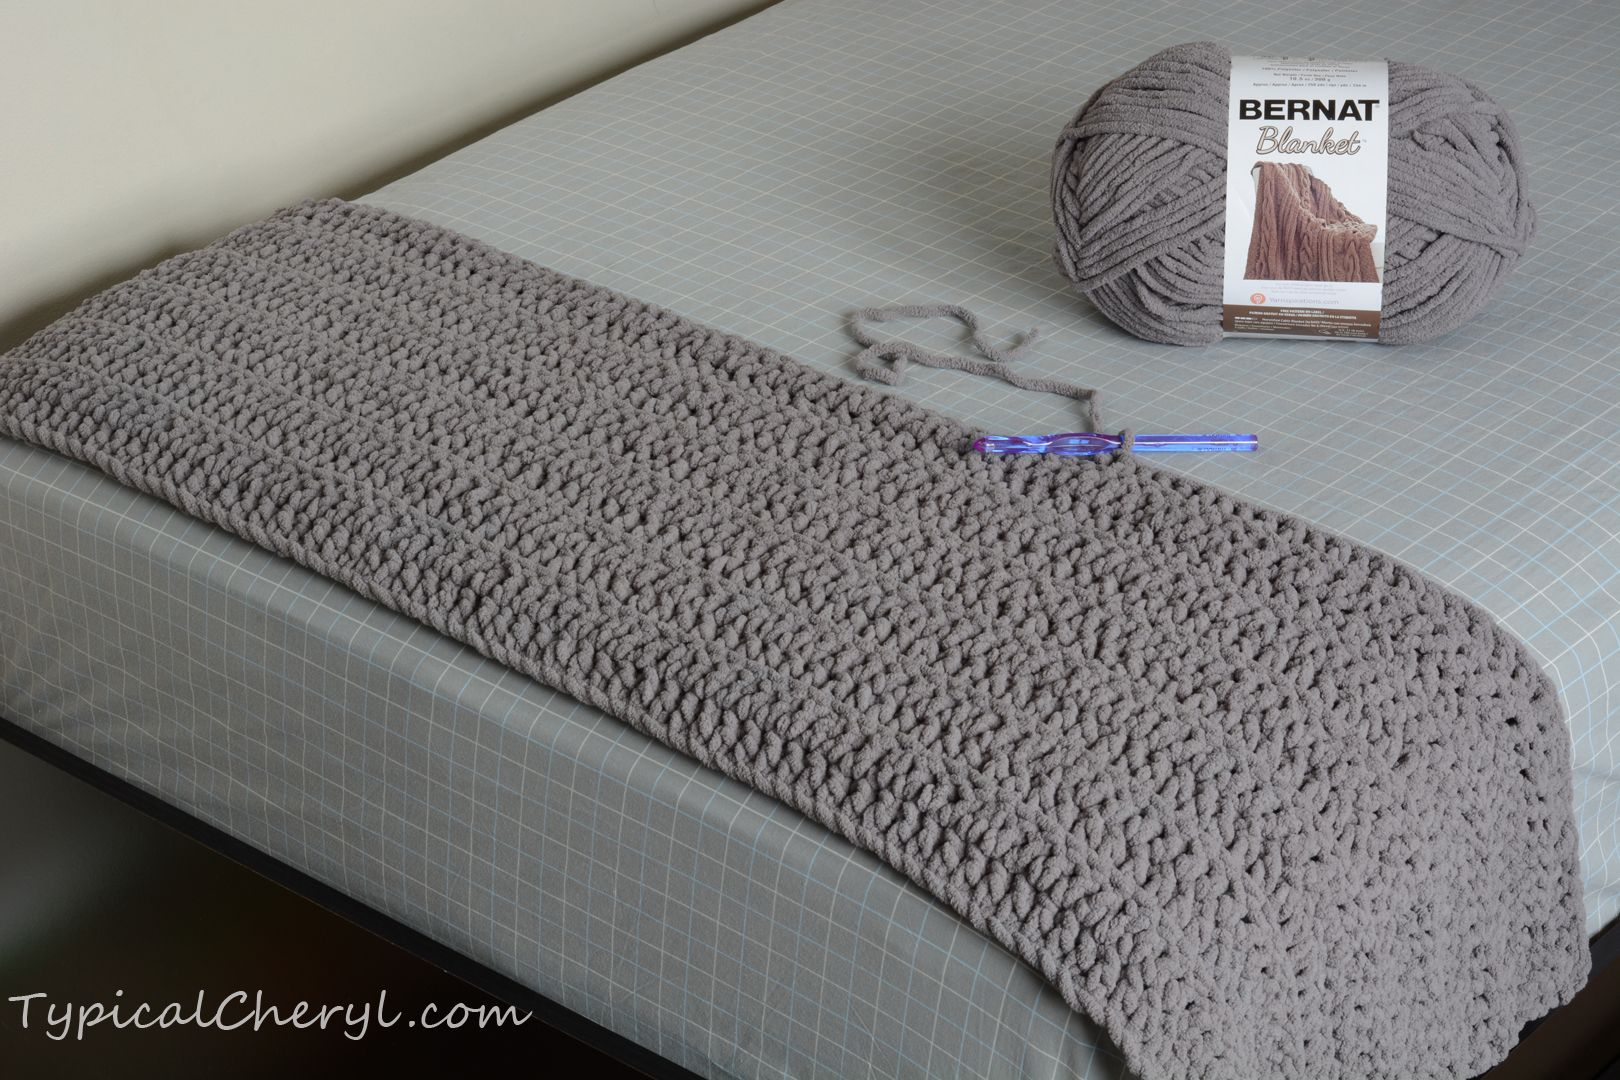 Simple crochet blanket using Bernat Blanket yarn. How many skeins do ...